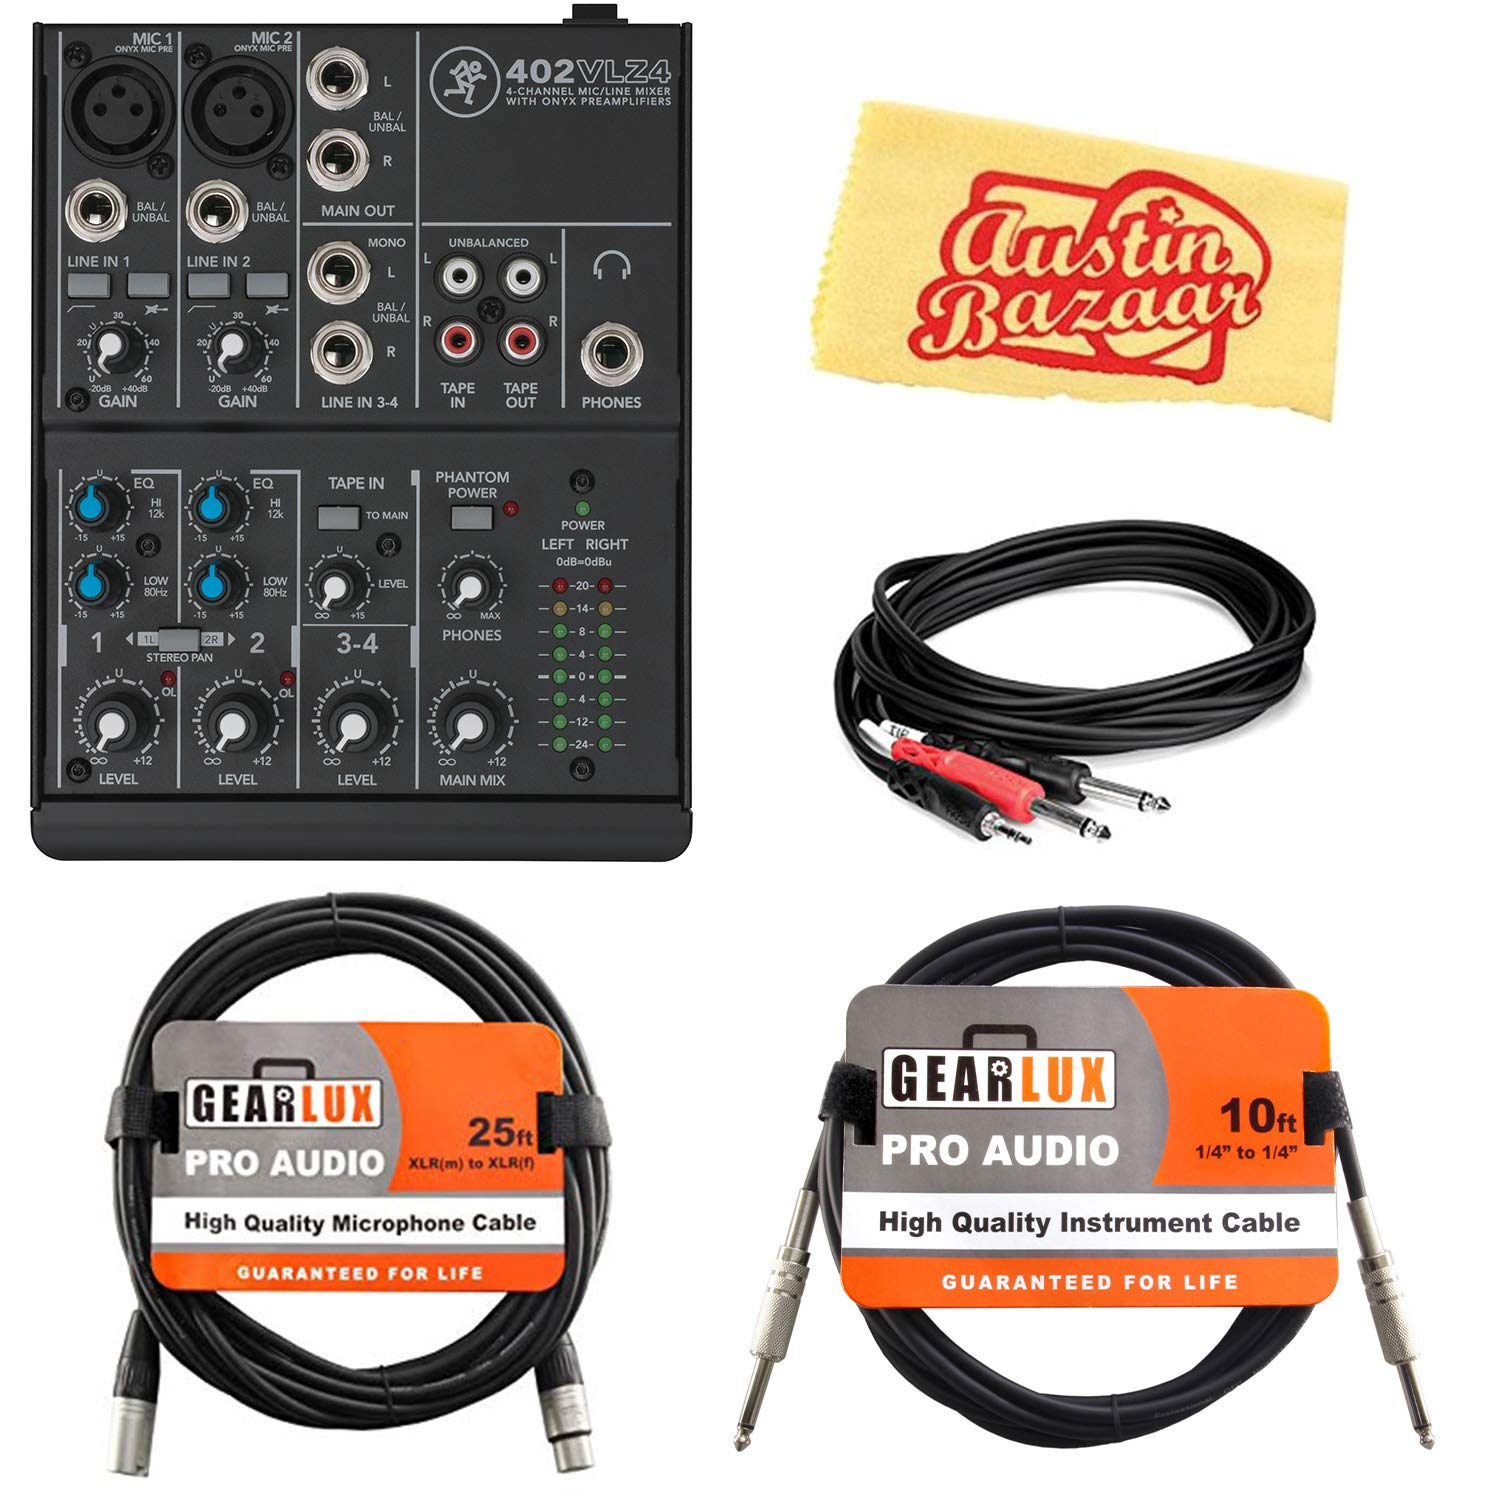 Mackie 402VLZ4 4-Channel Ultra-Compact Mixer Bundle with XLR Cable, Instrument Cable, Stereo Breakout Cable, and Austin Bazaar Polishing Cloth by Mackie (Image #1)